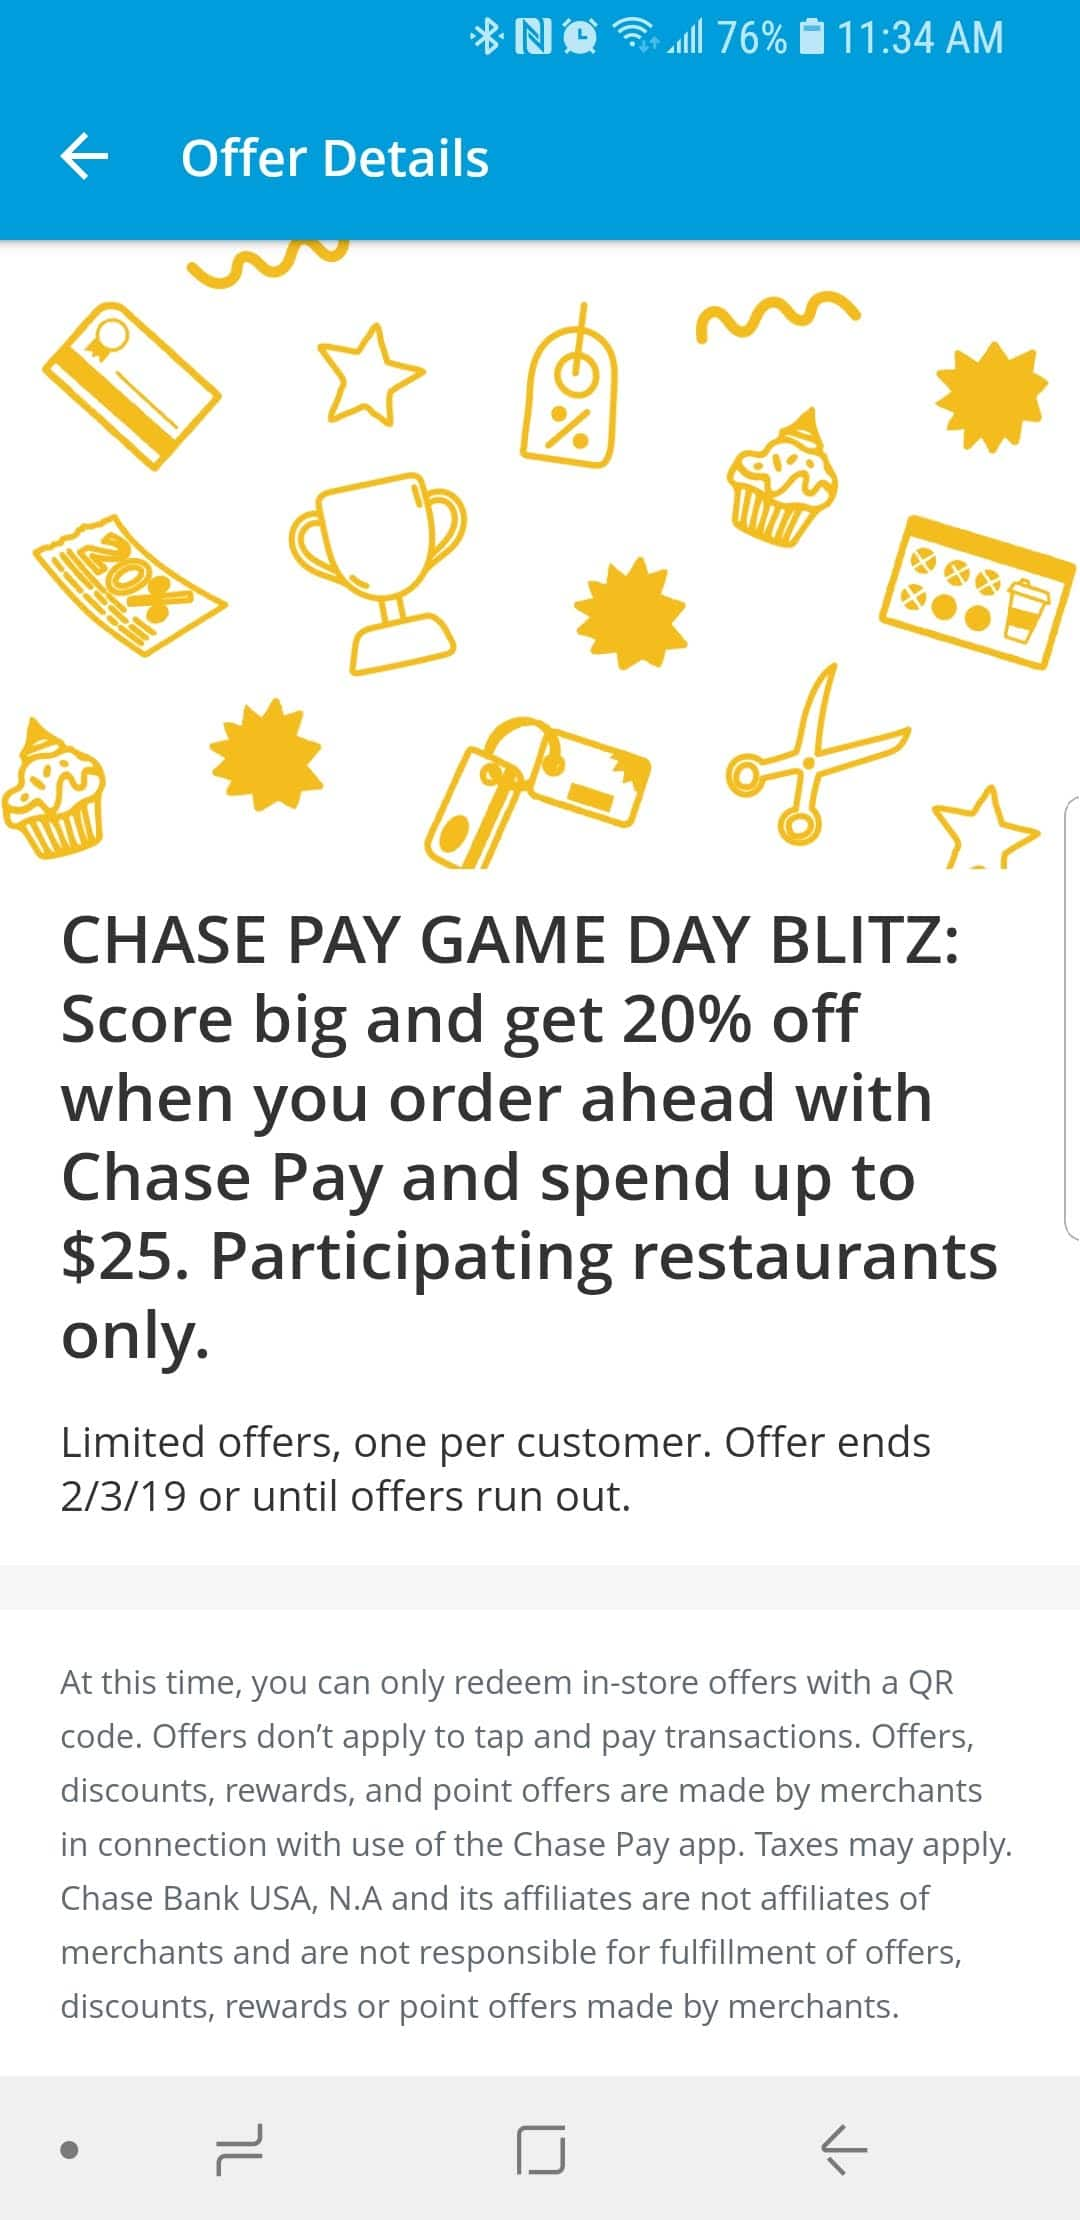 Chase Pay App:  Get 20% off when you order through Chase Pay app at participating restaurants.  Spend up to $25.